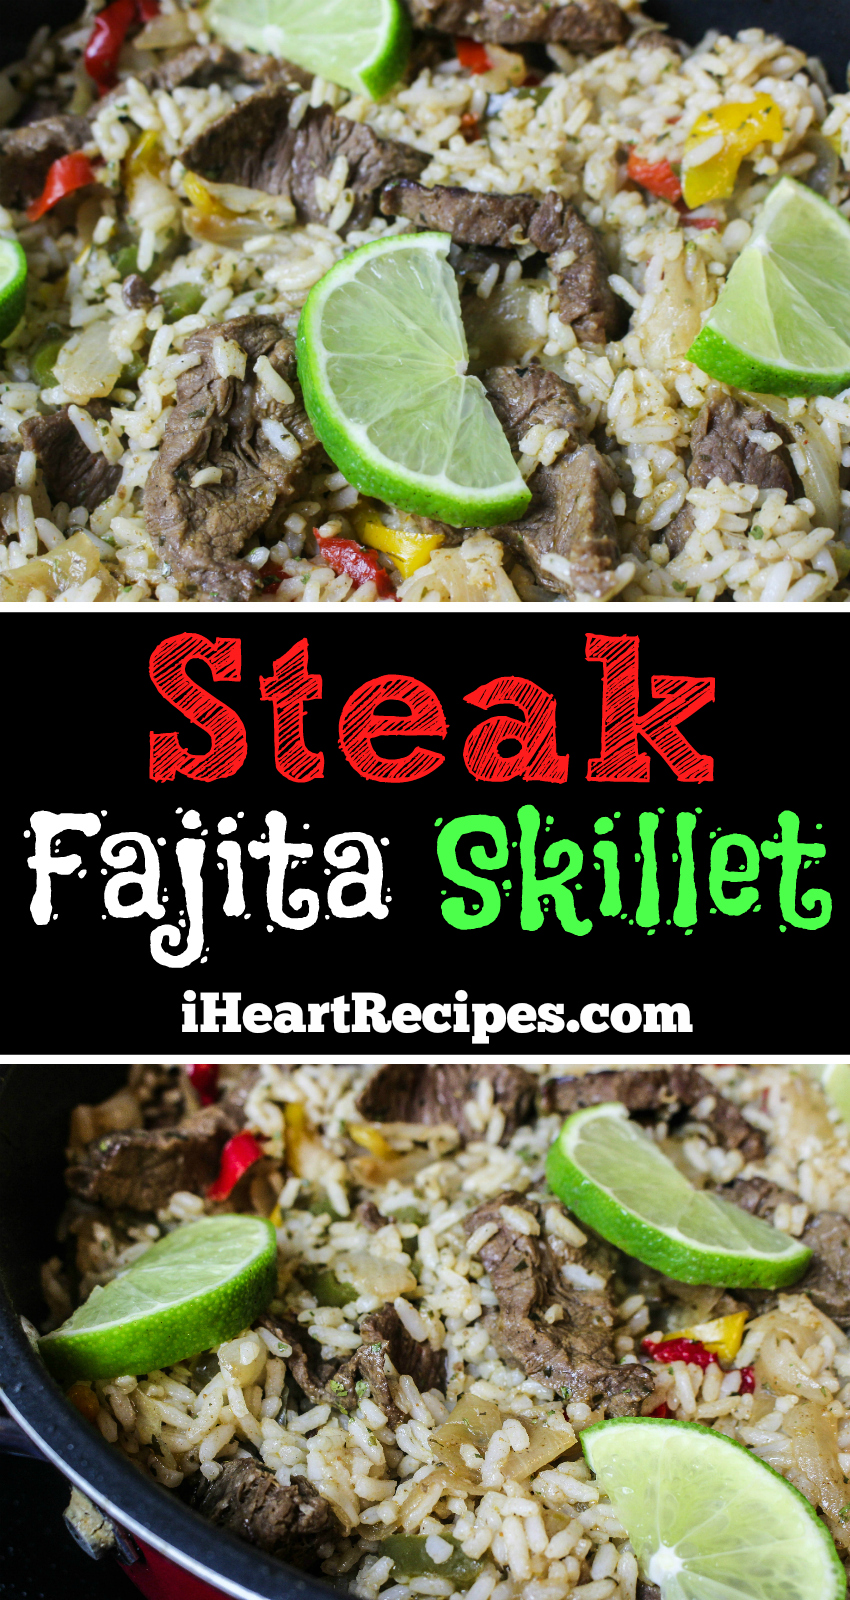 One-pot steak fajita skillet recipe with limes, steak, sweet peppers and white rice